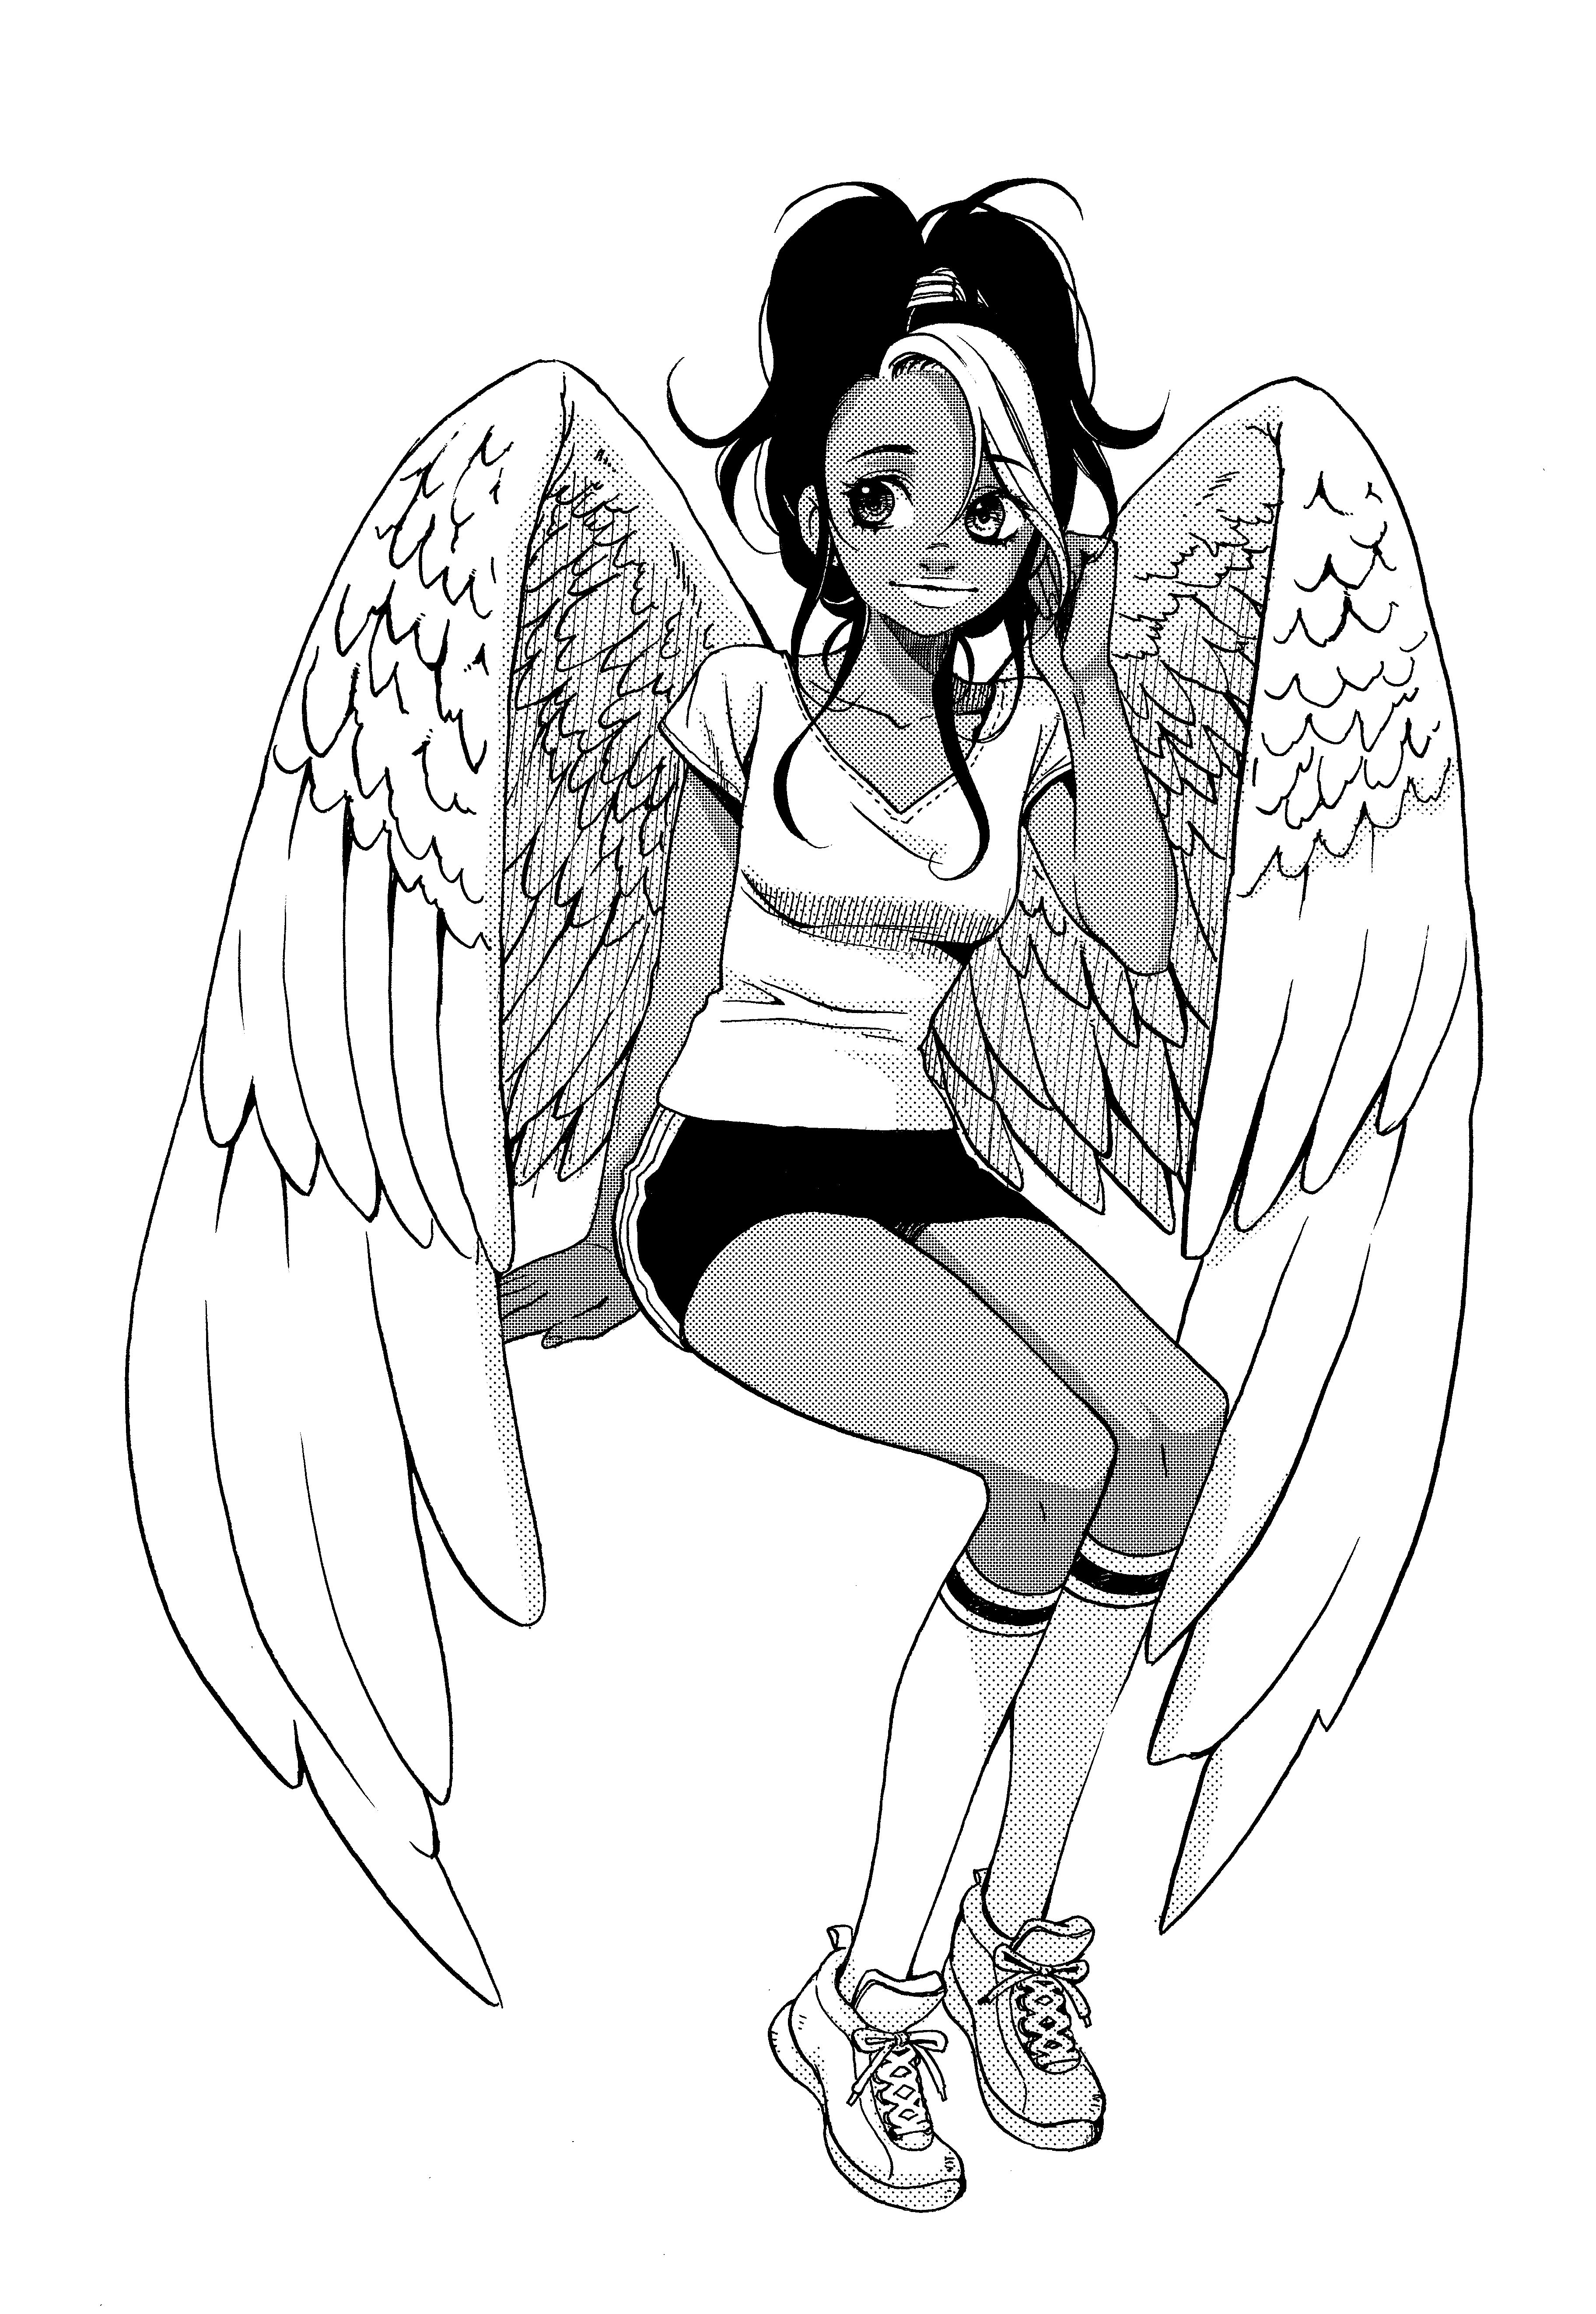 Character Design For Nudge Of The Maximum Ride Manga Series